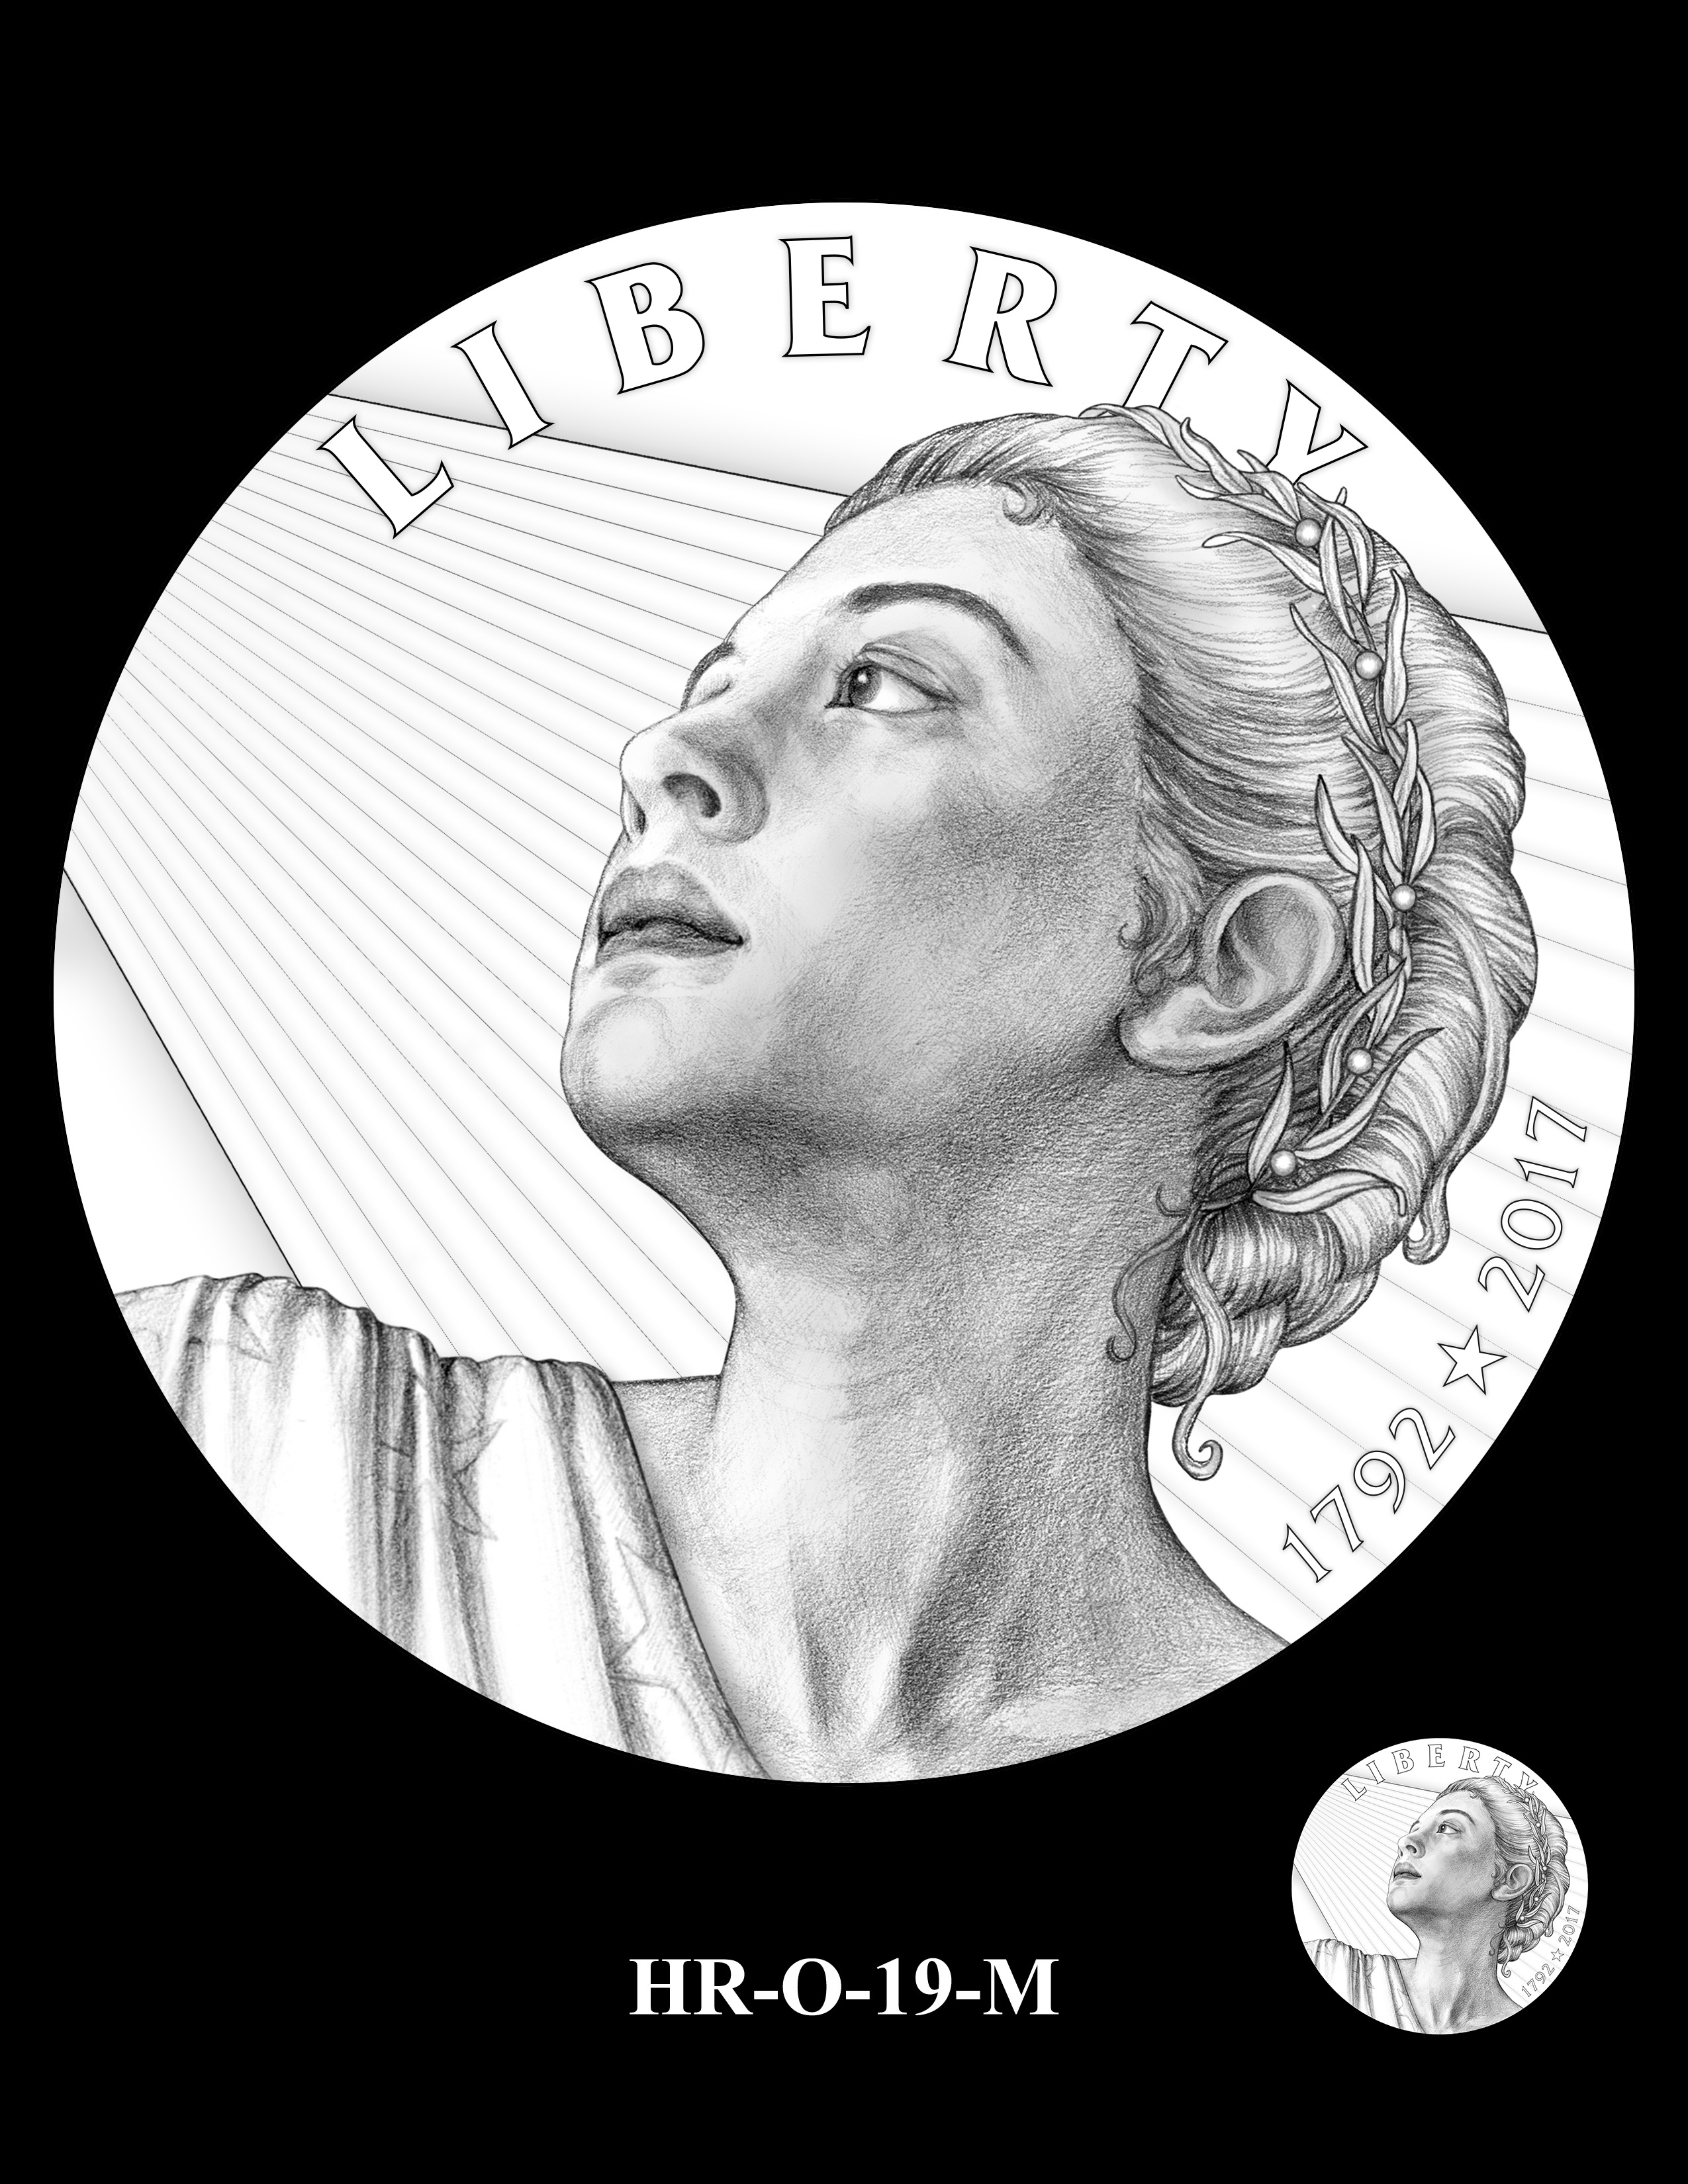 HR-O-19-M - 2017 American Liberty High Relief Gold Coin and Silver Medal Program